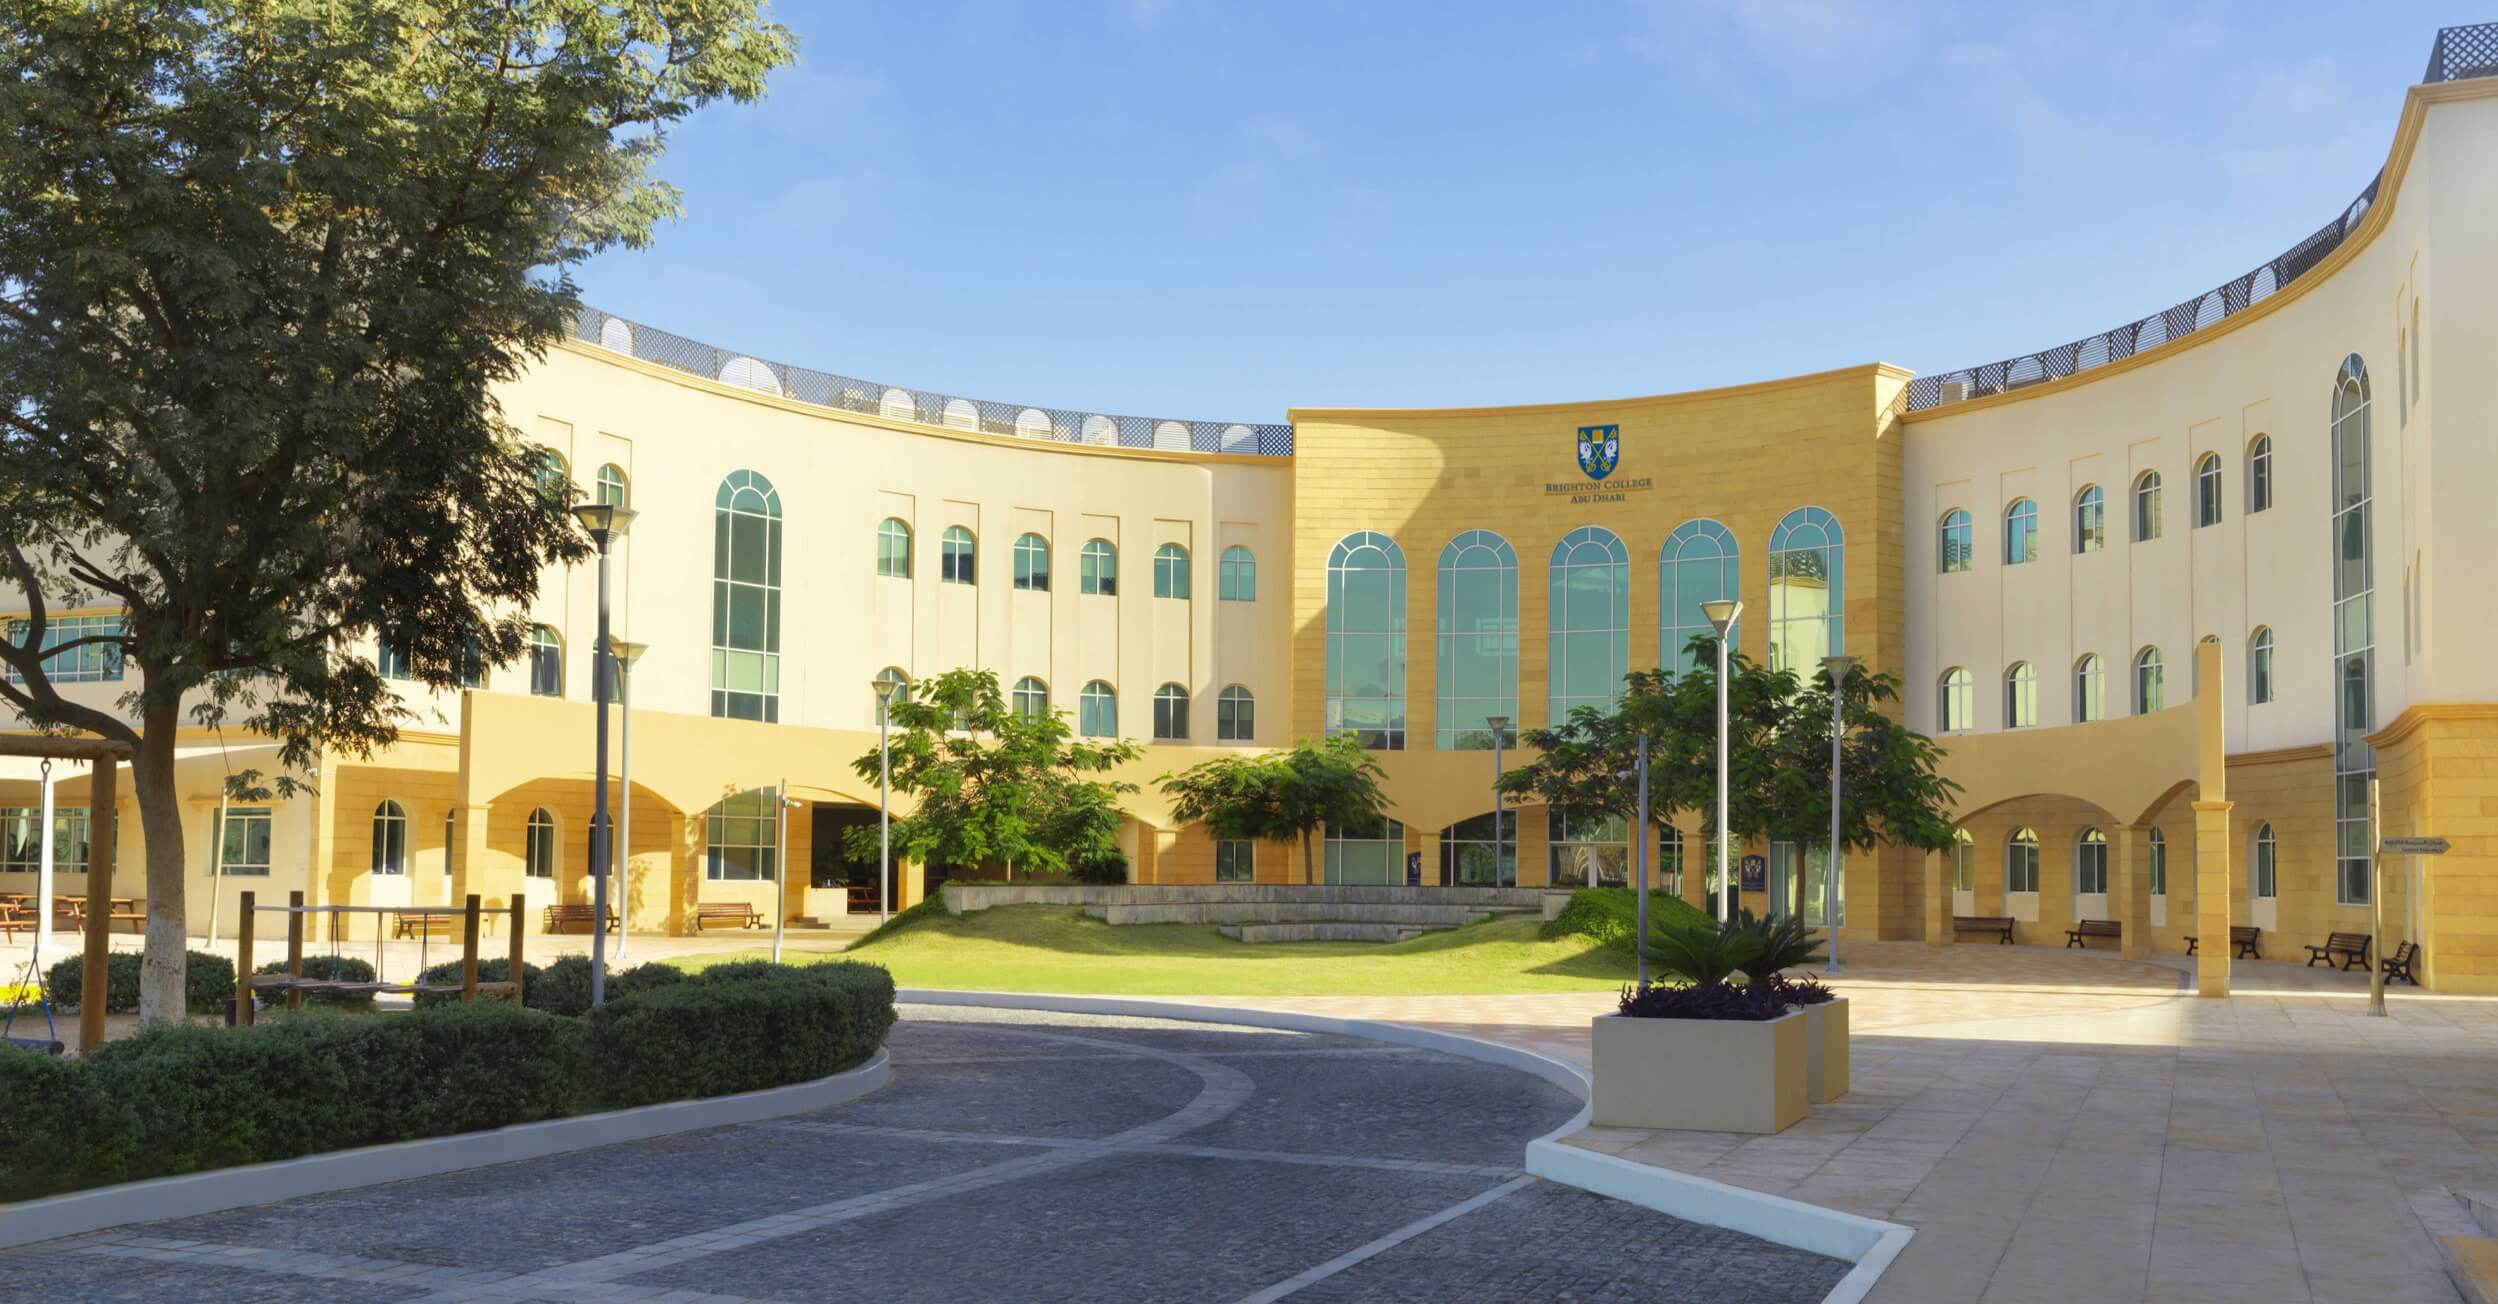 Brighton College Abu Dhabi Main Building-min.jpg